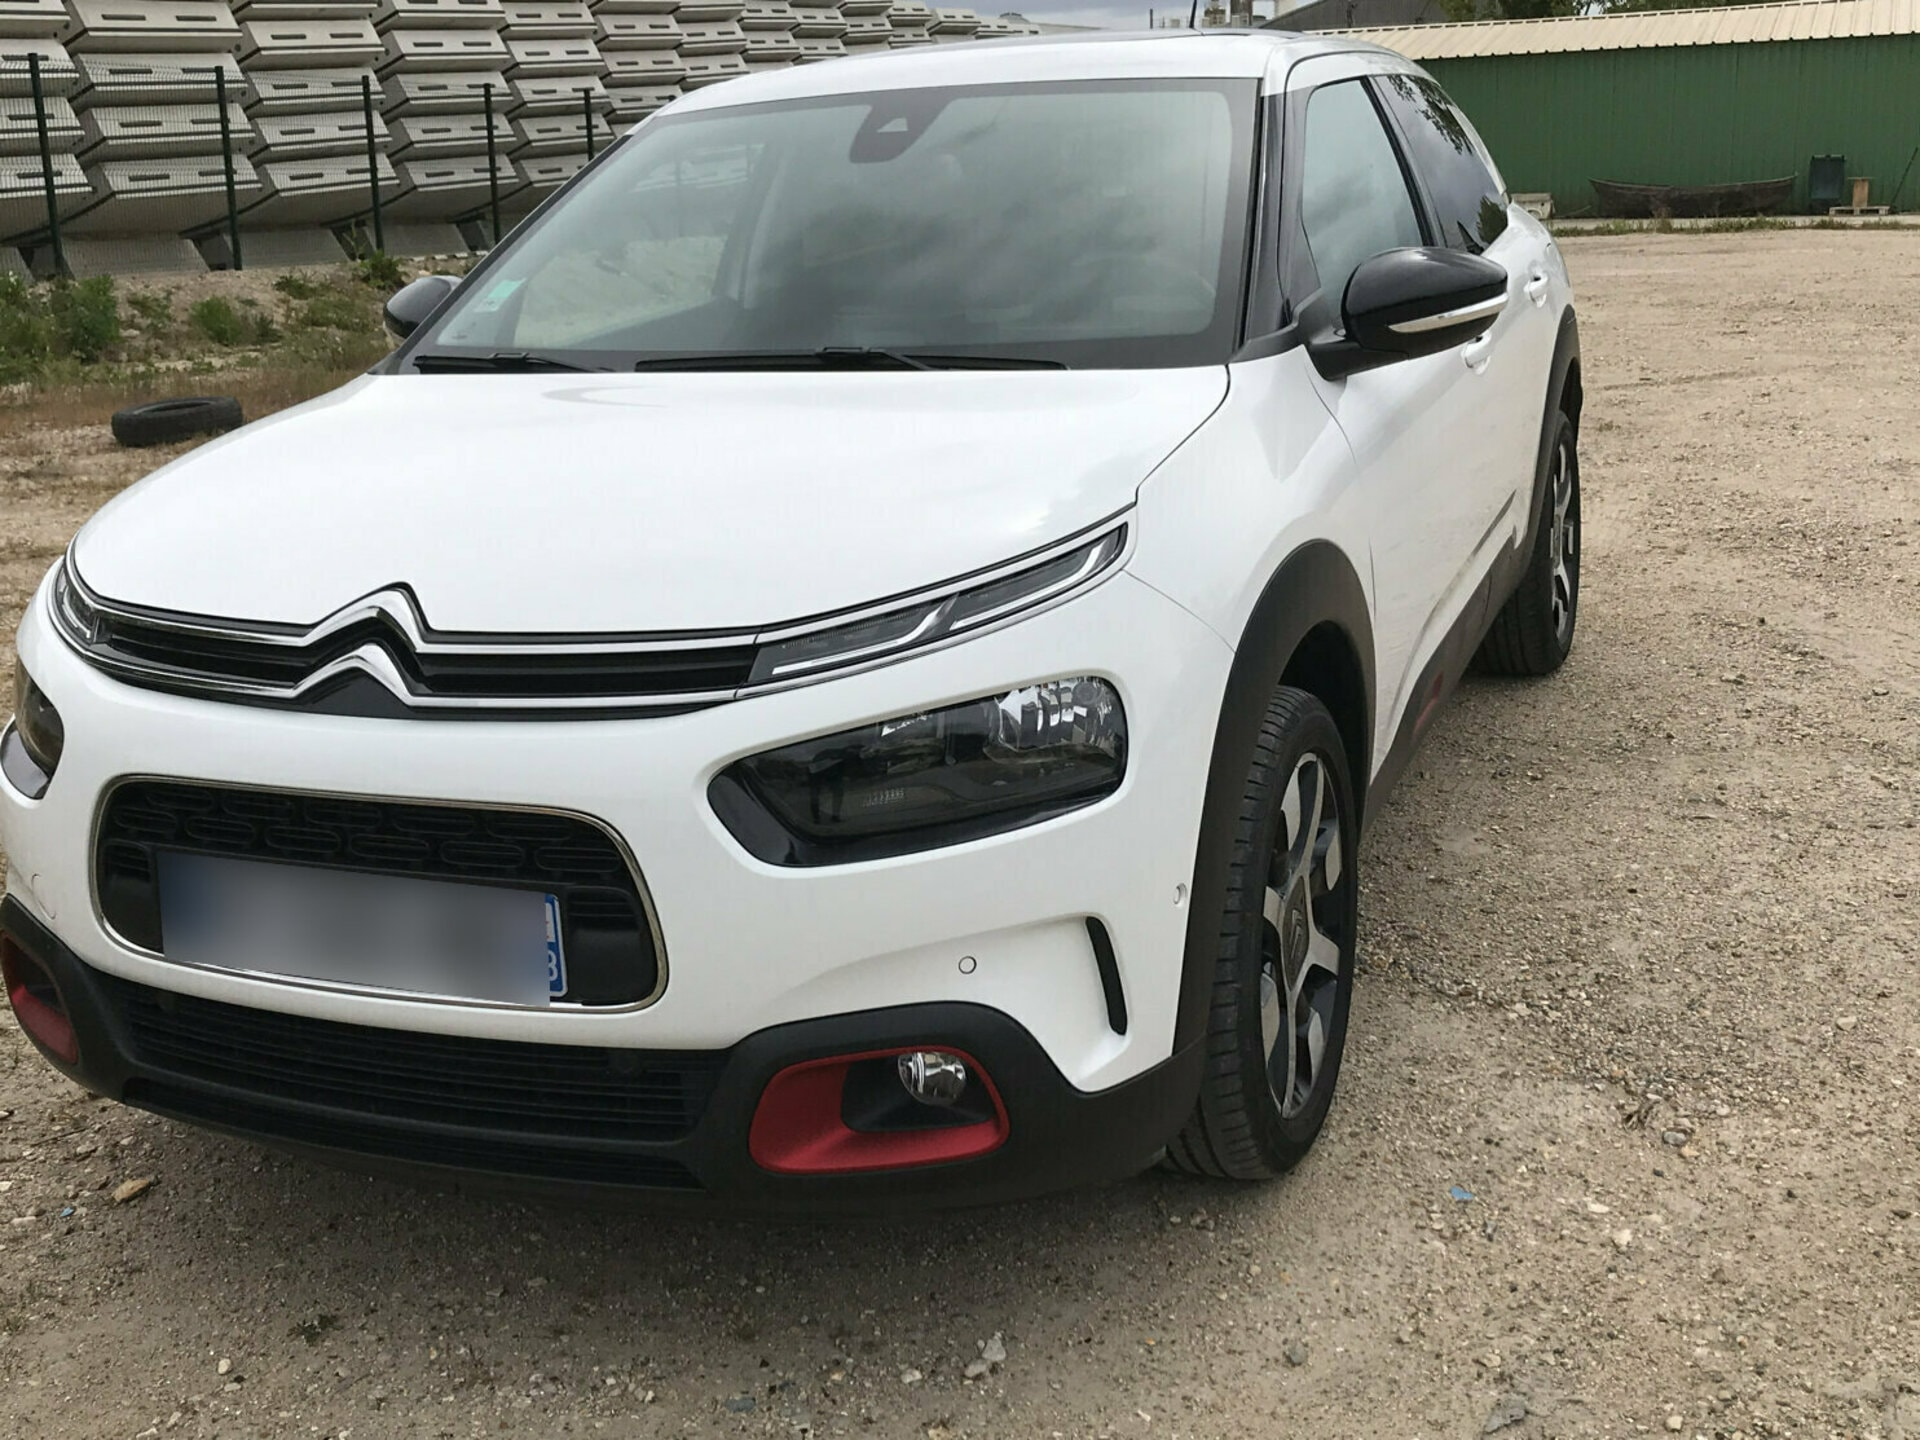 CITROEN C4 CACTUS 1.2 PURETECH 110 SHINE EAT BVA START-STOP - Carventura